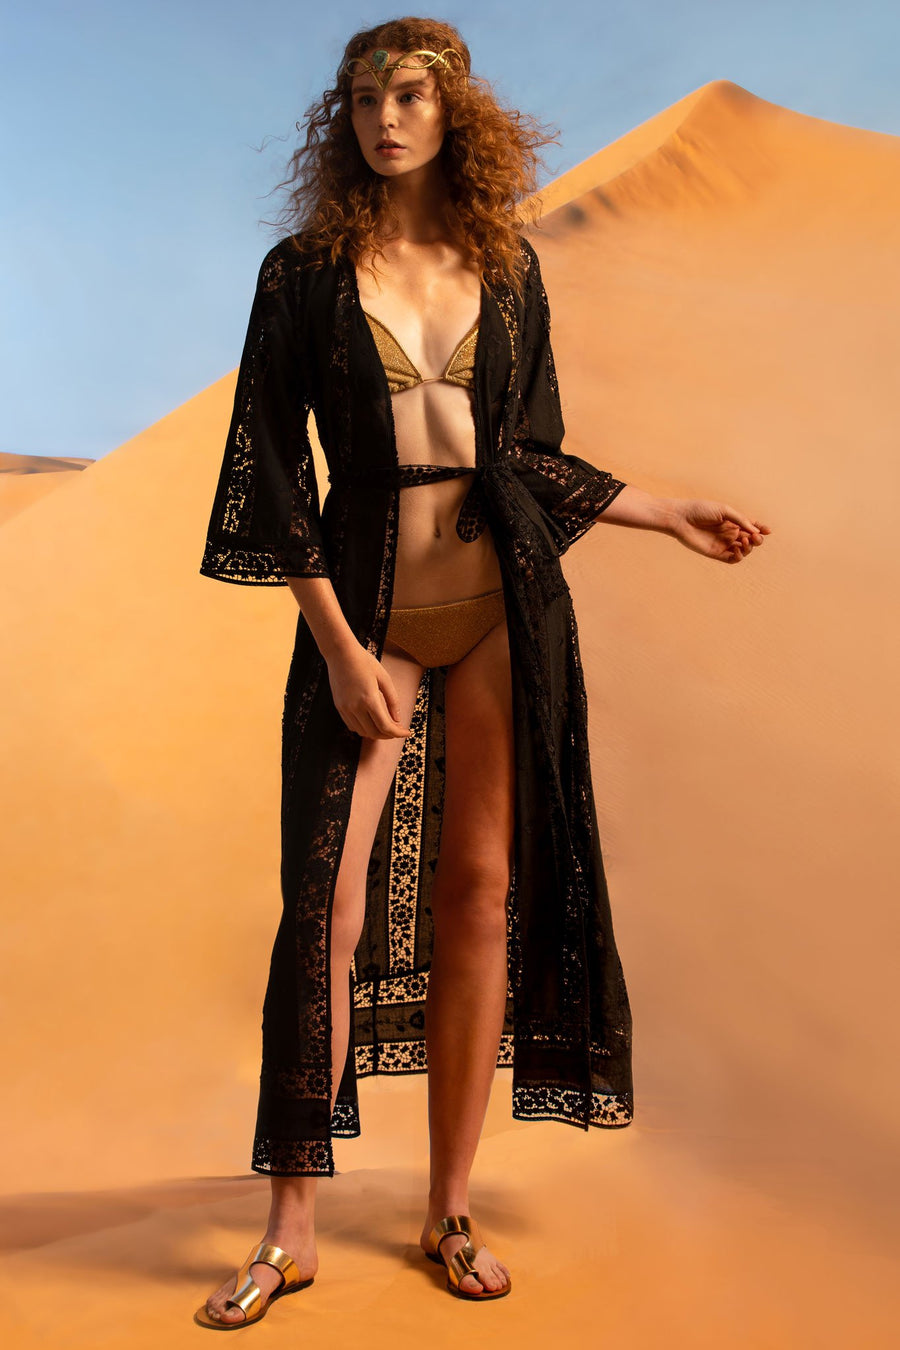 This is a photo of a woman wearing a black lace embroidered coat as a coverup. She wears it open over a gold bikini and gold sandals.